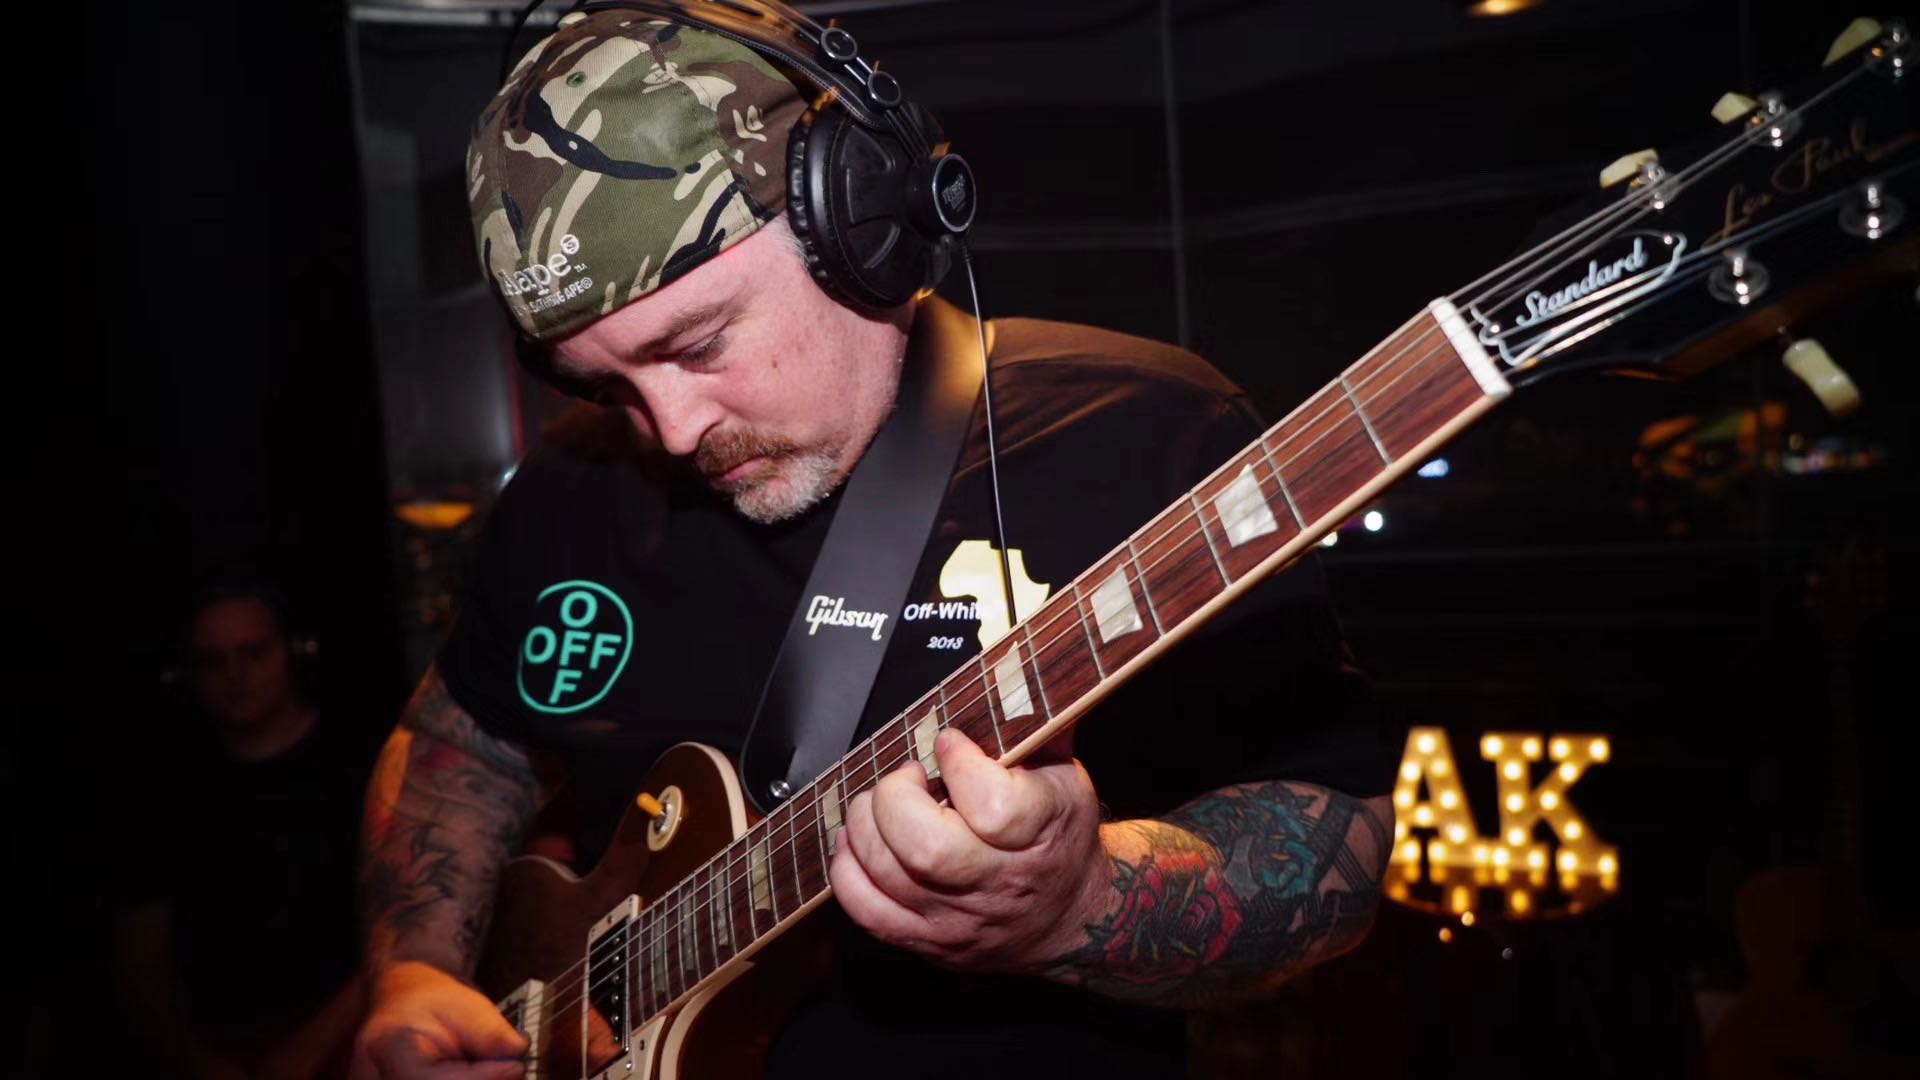 Neil Larocque on Getting Through 2020 with His Guitar